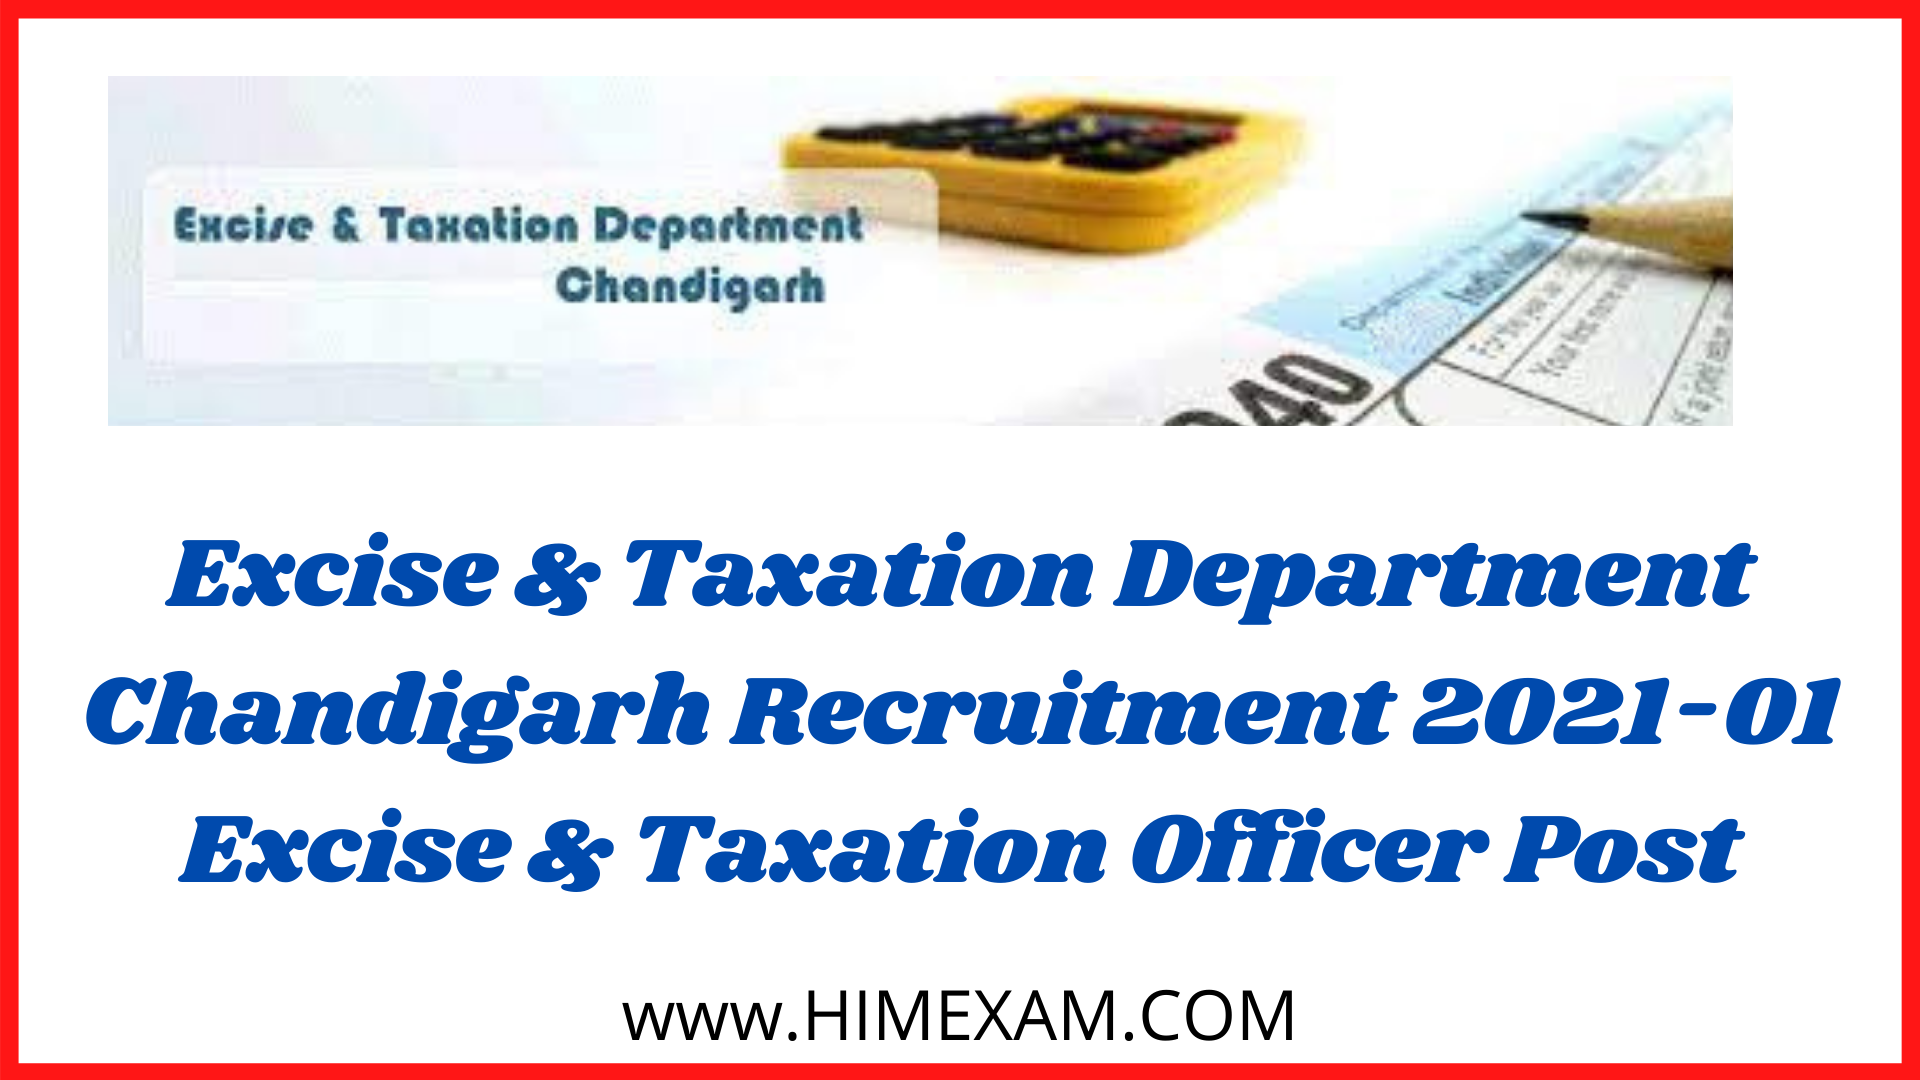 Excise & Taxation Department Chandigarh Recruitment 2021-01 Excise & Taxation Officer Post